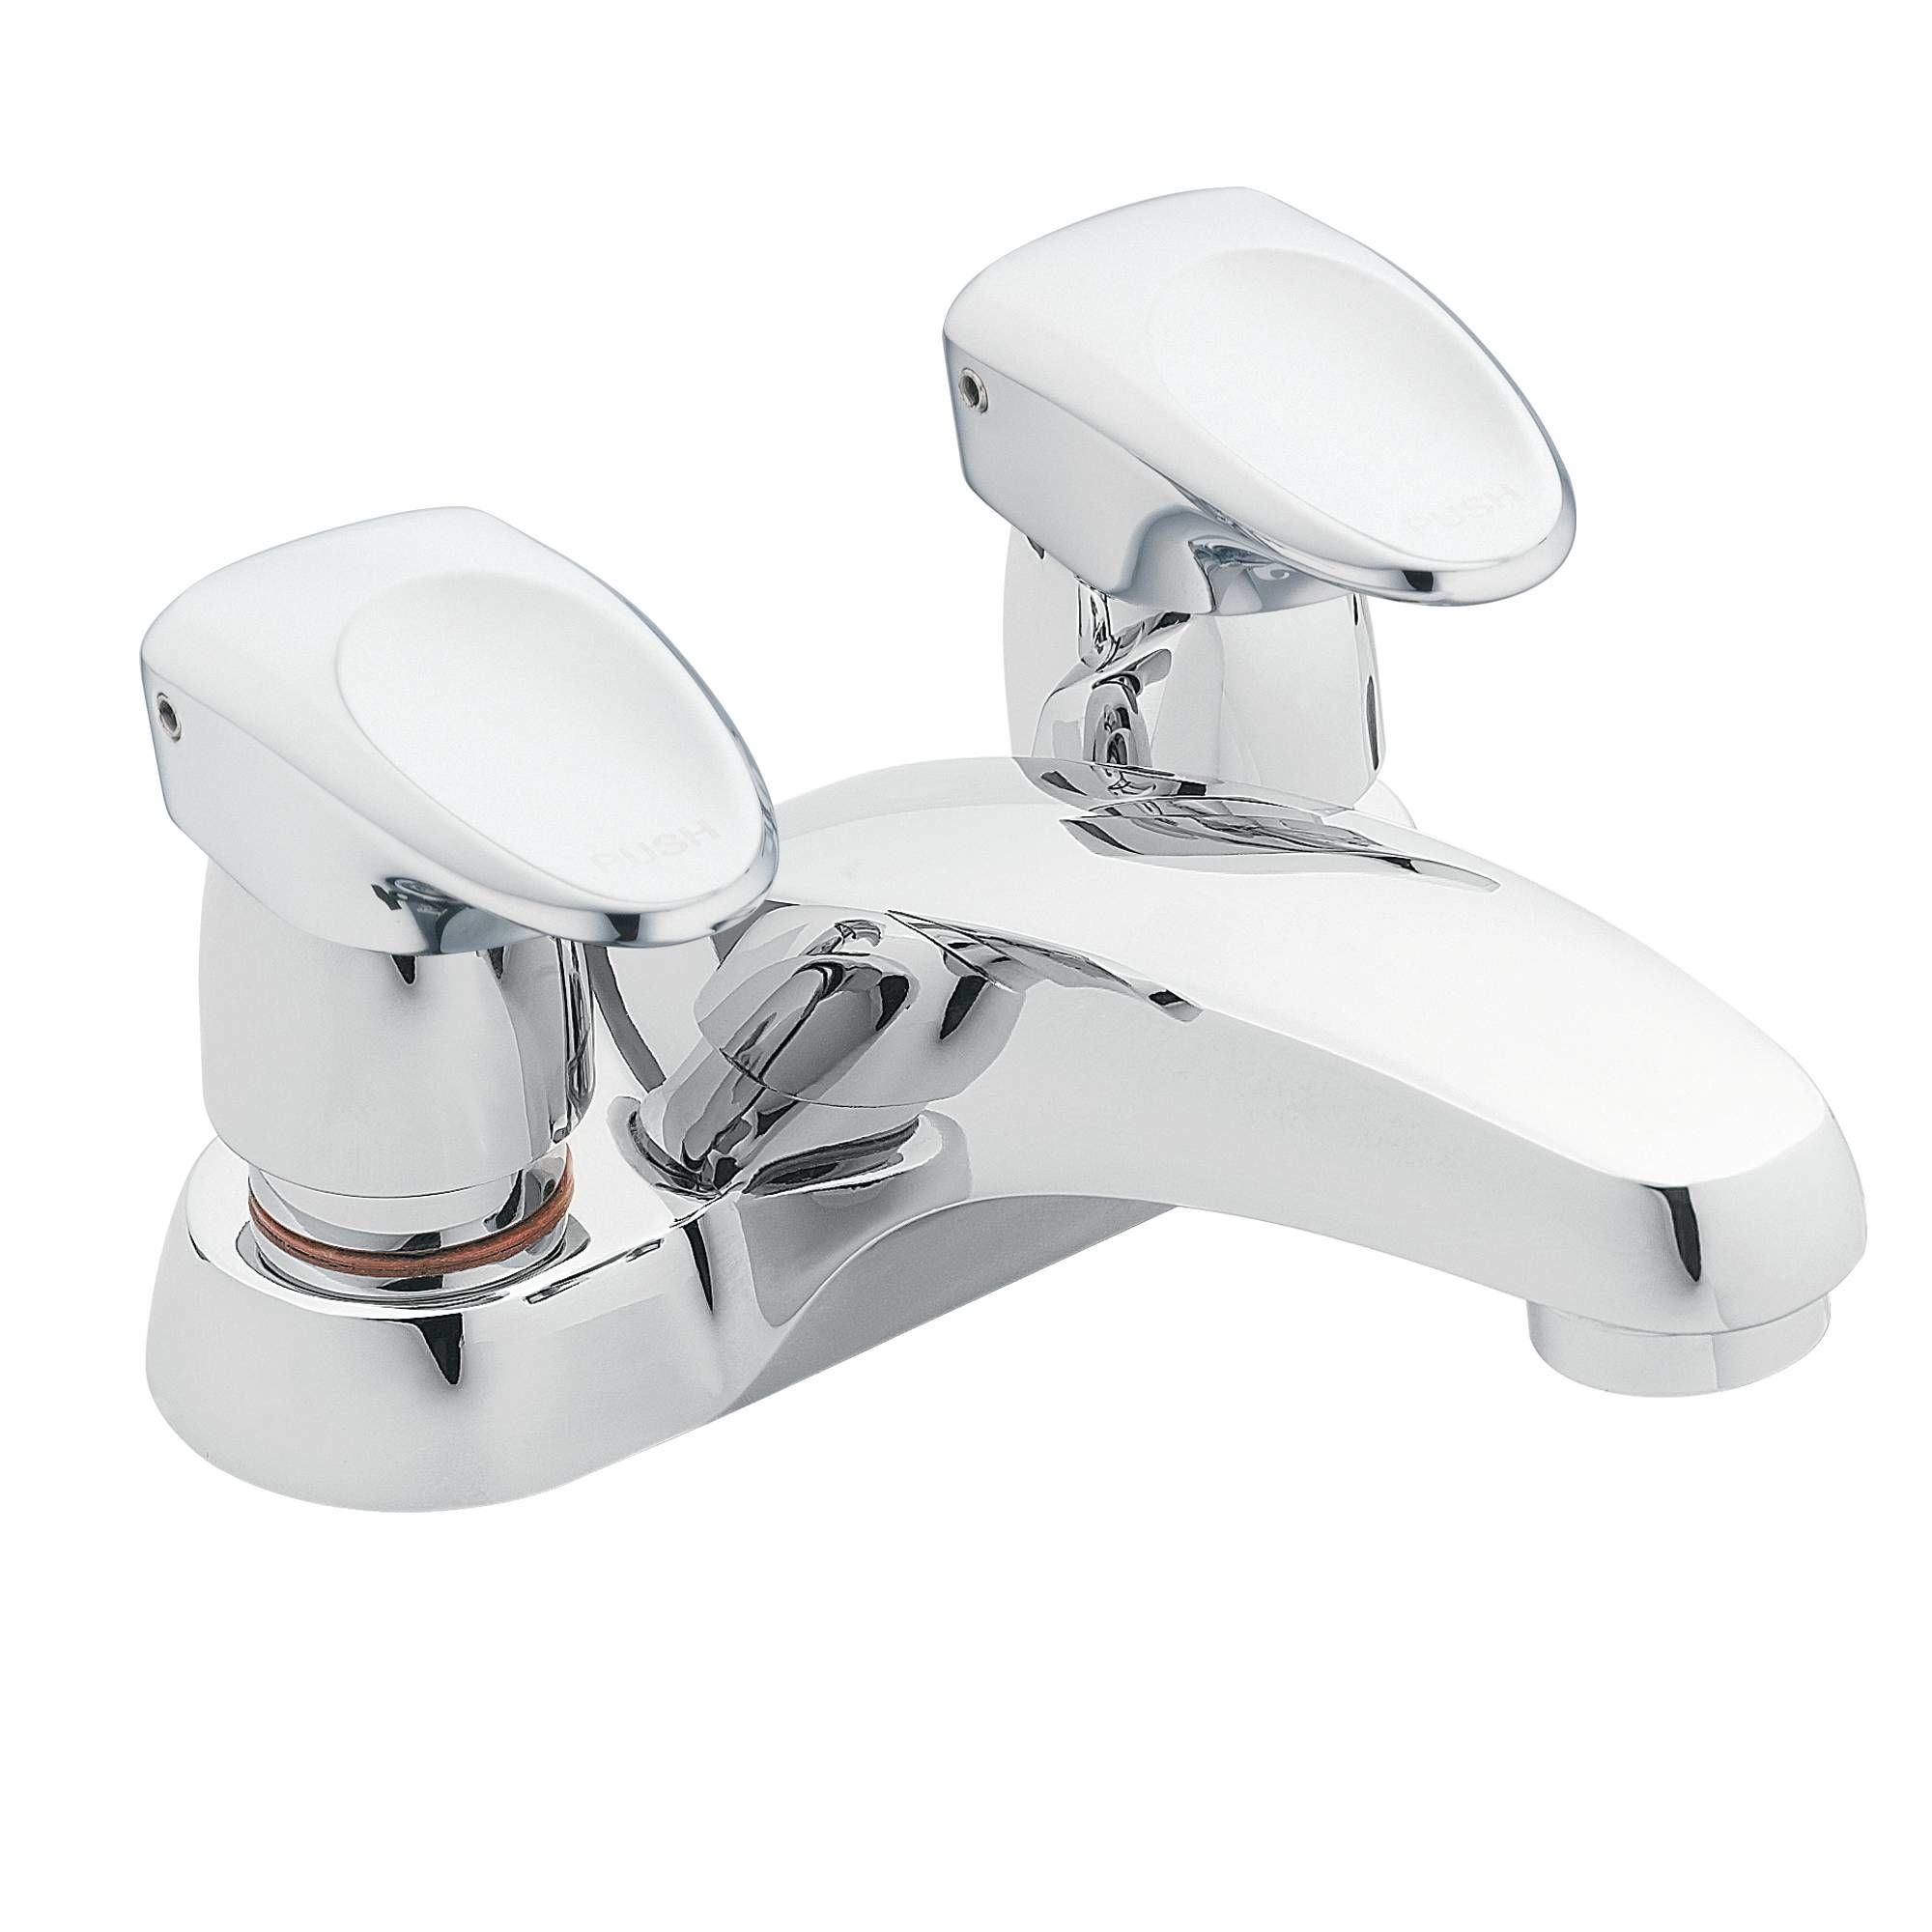 Moen Chrome Single Handle Centerset Metering Bathroom Faucet - Moen commercial bathroom faucets